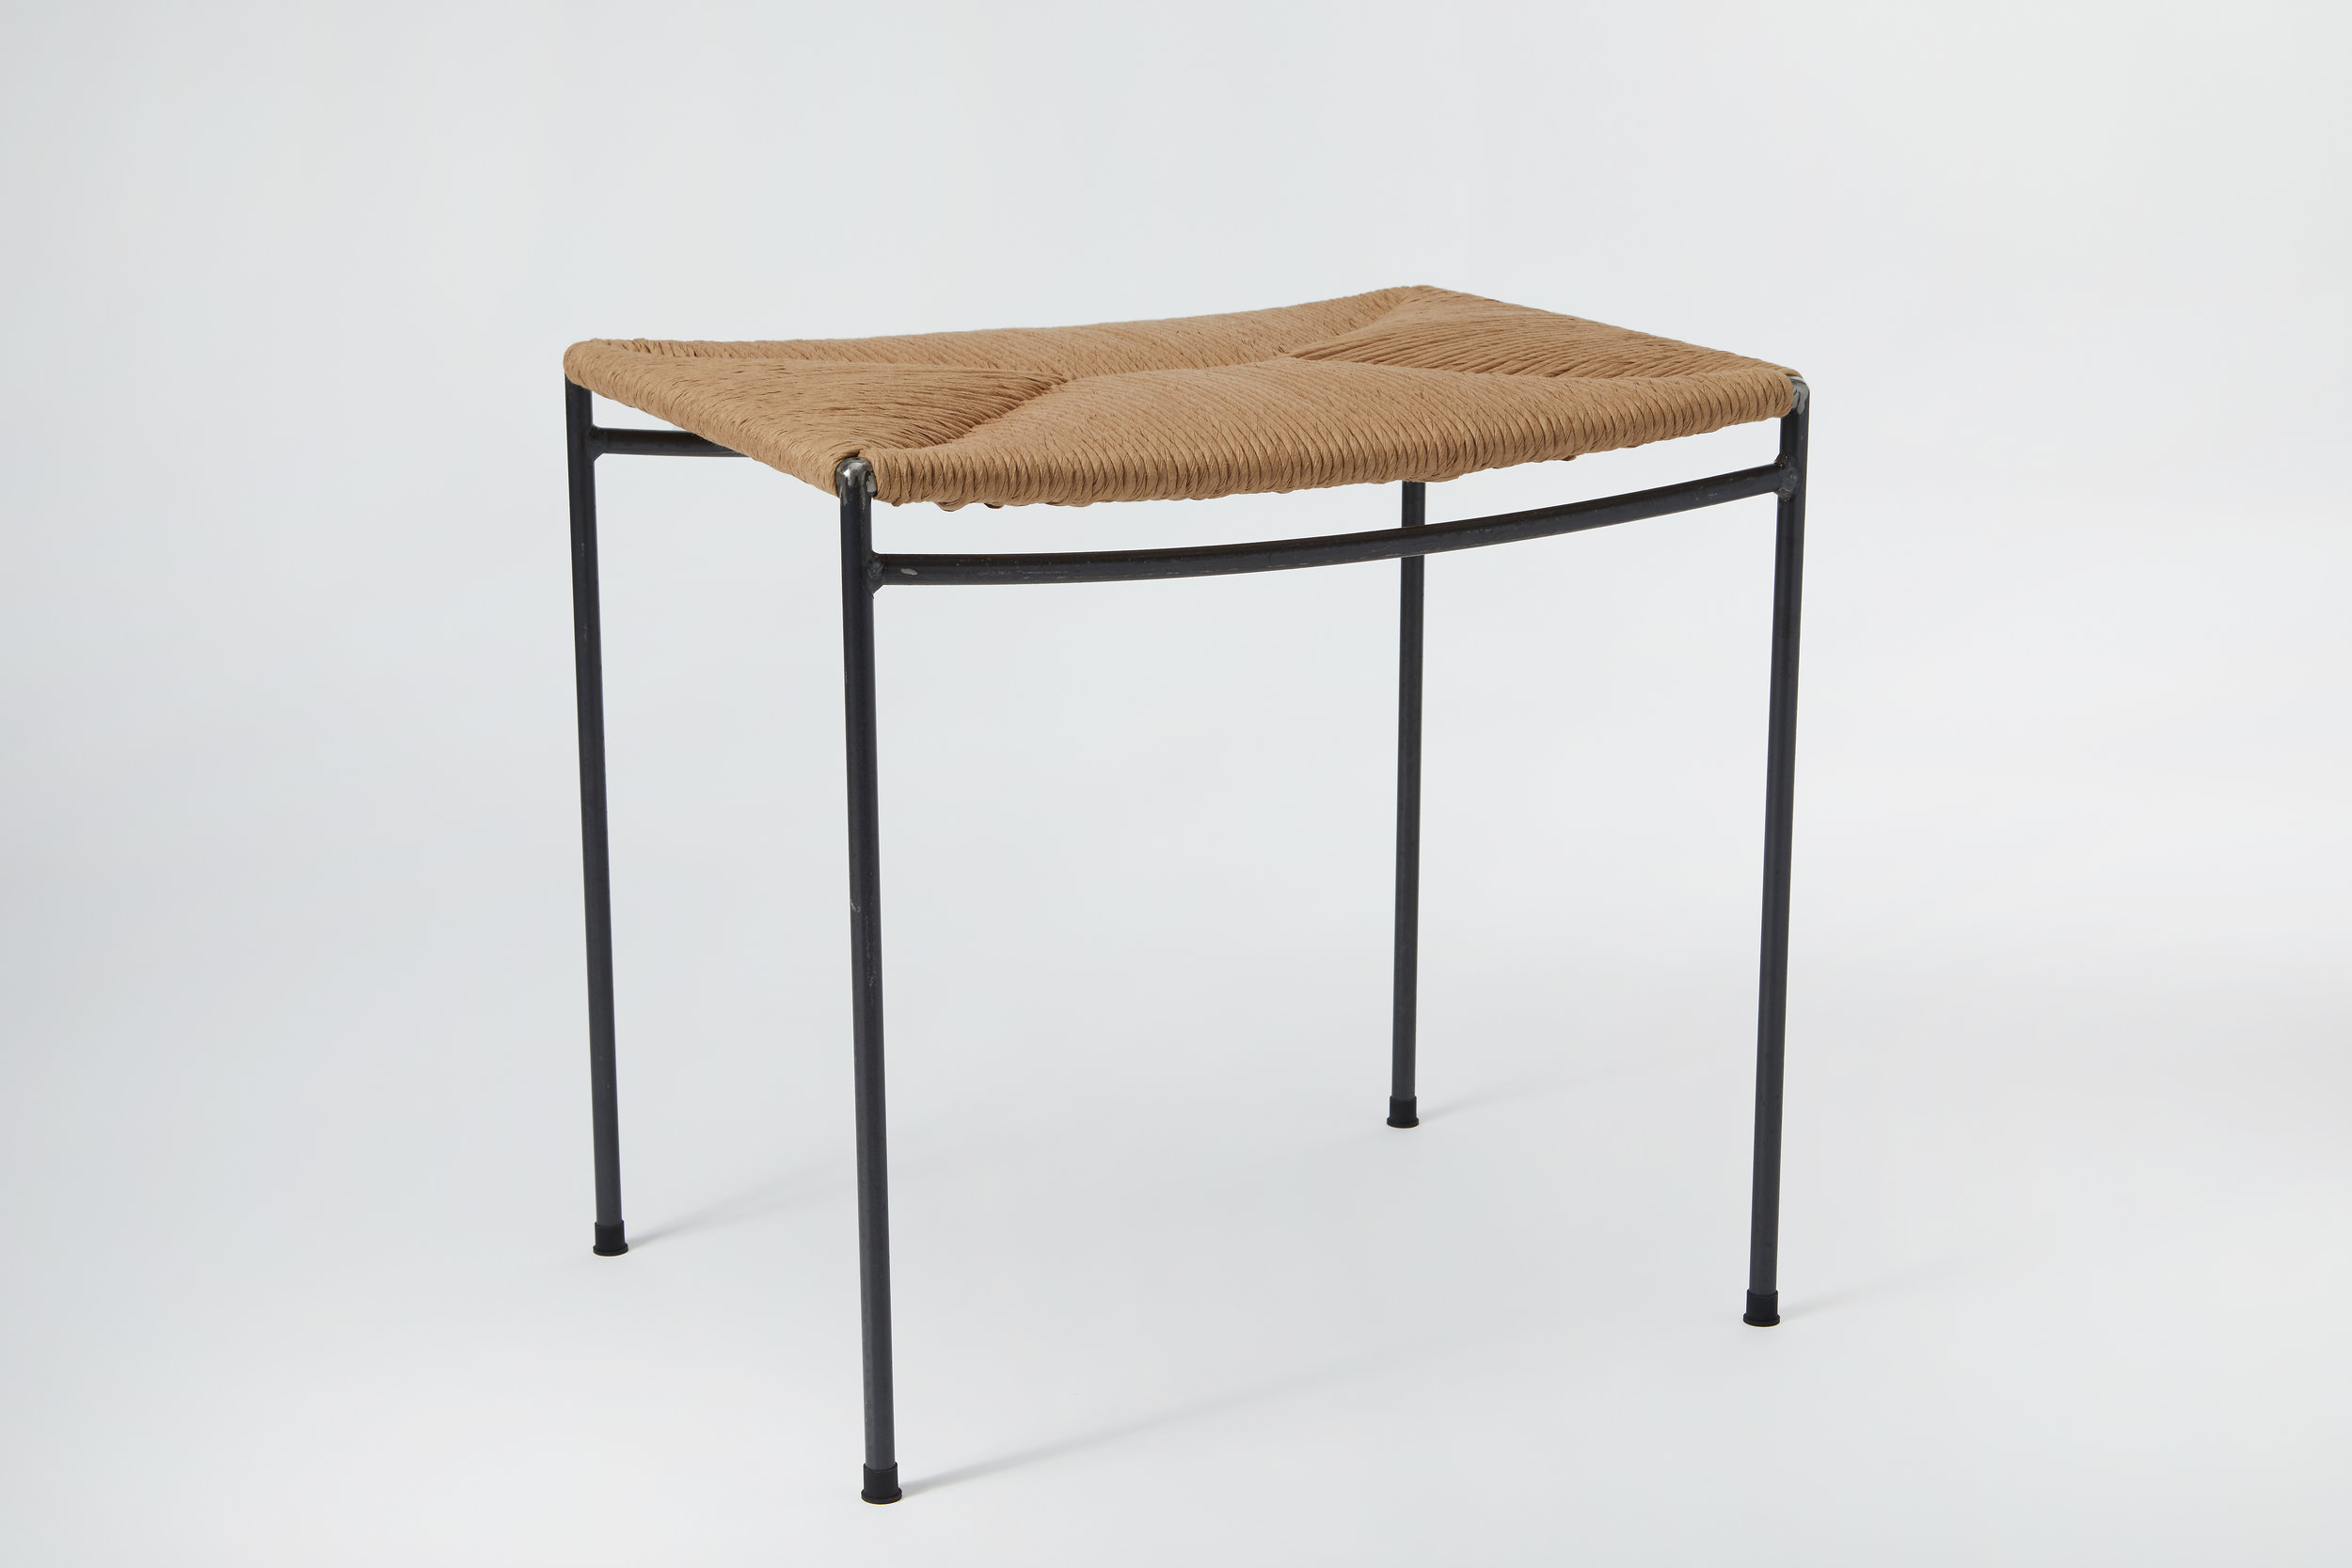 - After more than a year of searching for the perfect stool without success, David designed Untitled Rush Stool #1, and Milwood Design was born.